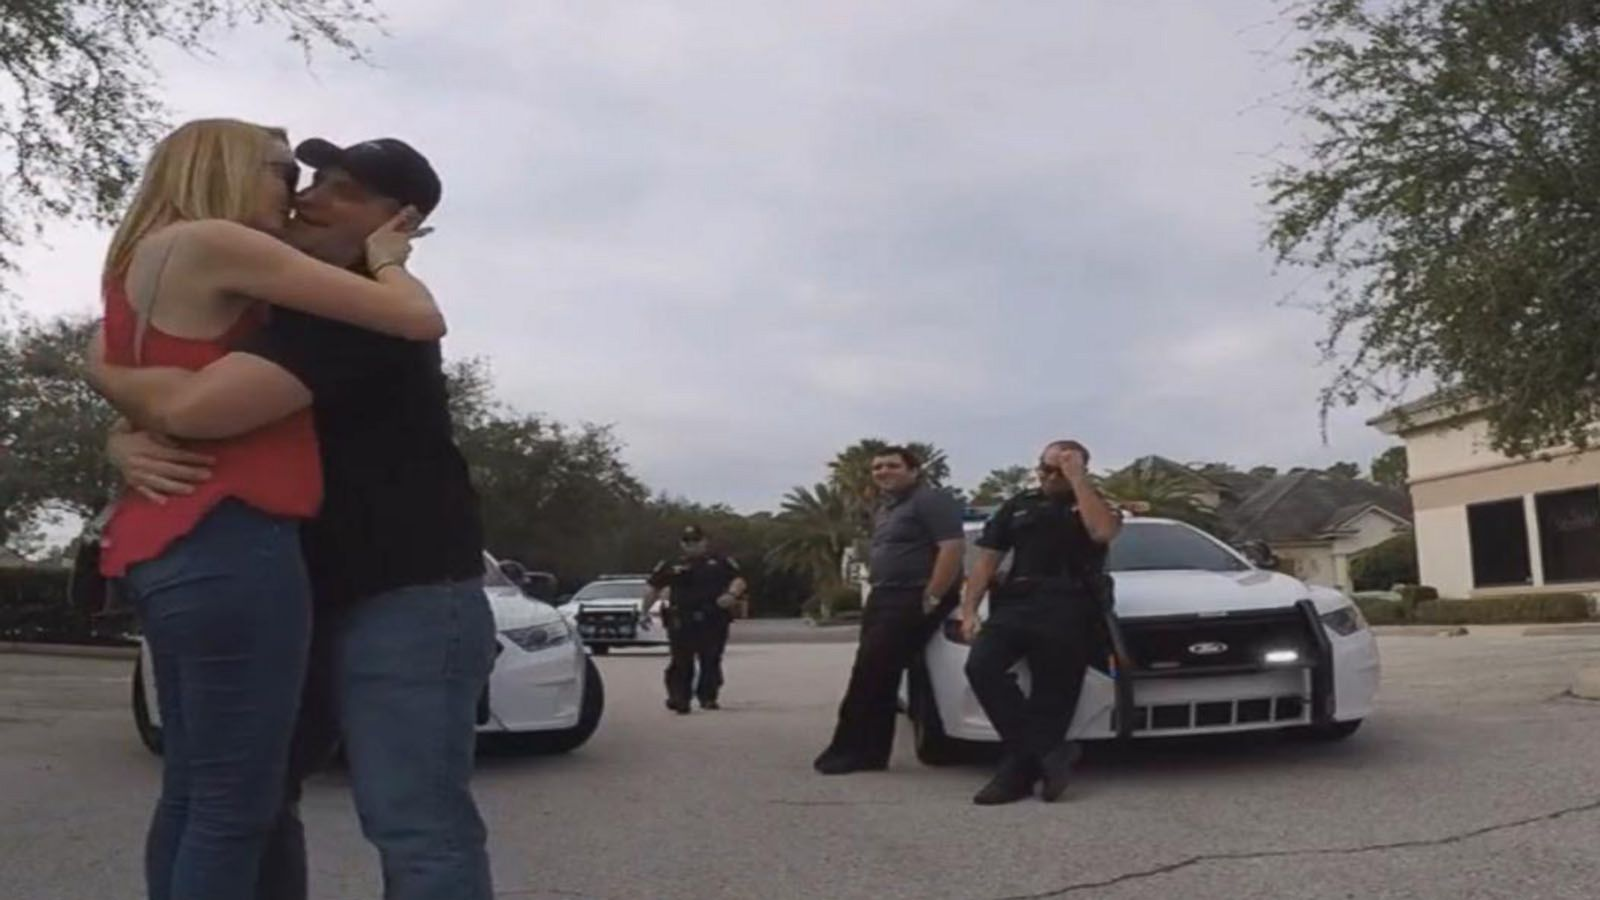 VIDEO: Florida Cops Help Man Propose to Scared Girlfriend After Fake Traffic Stop